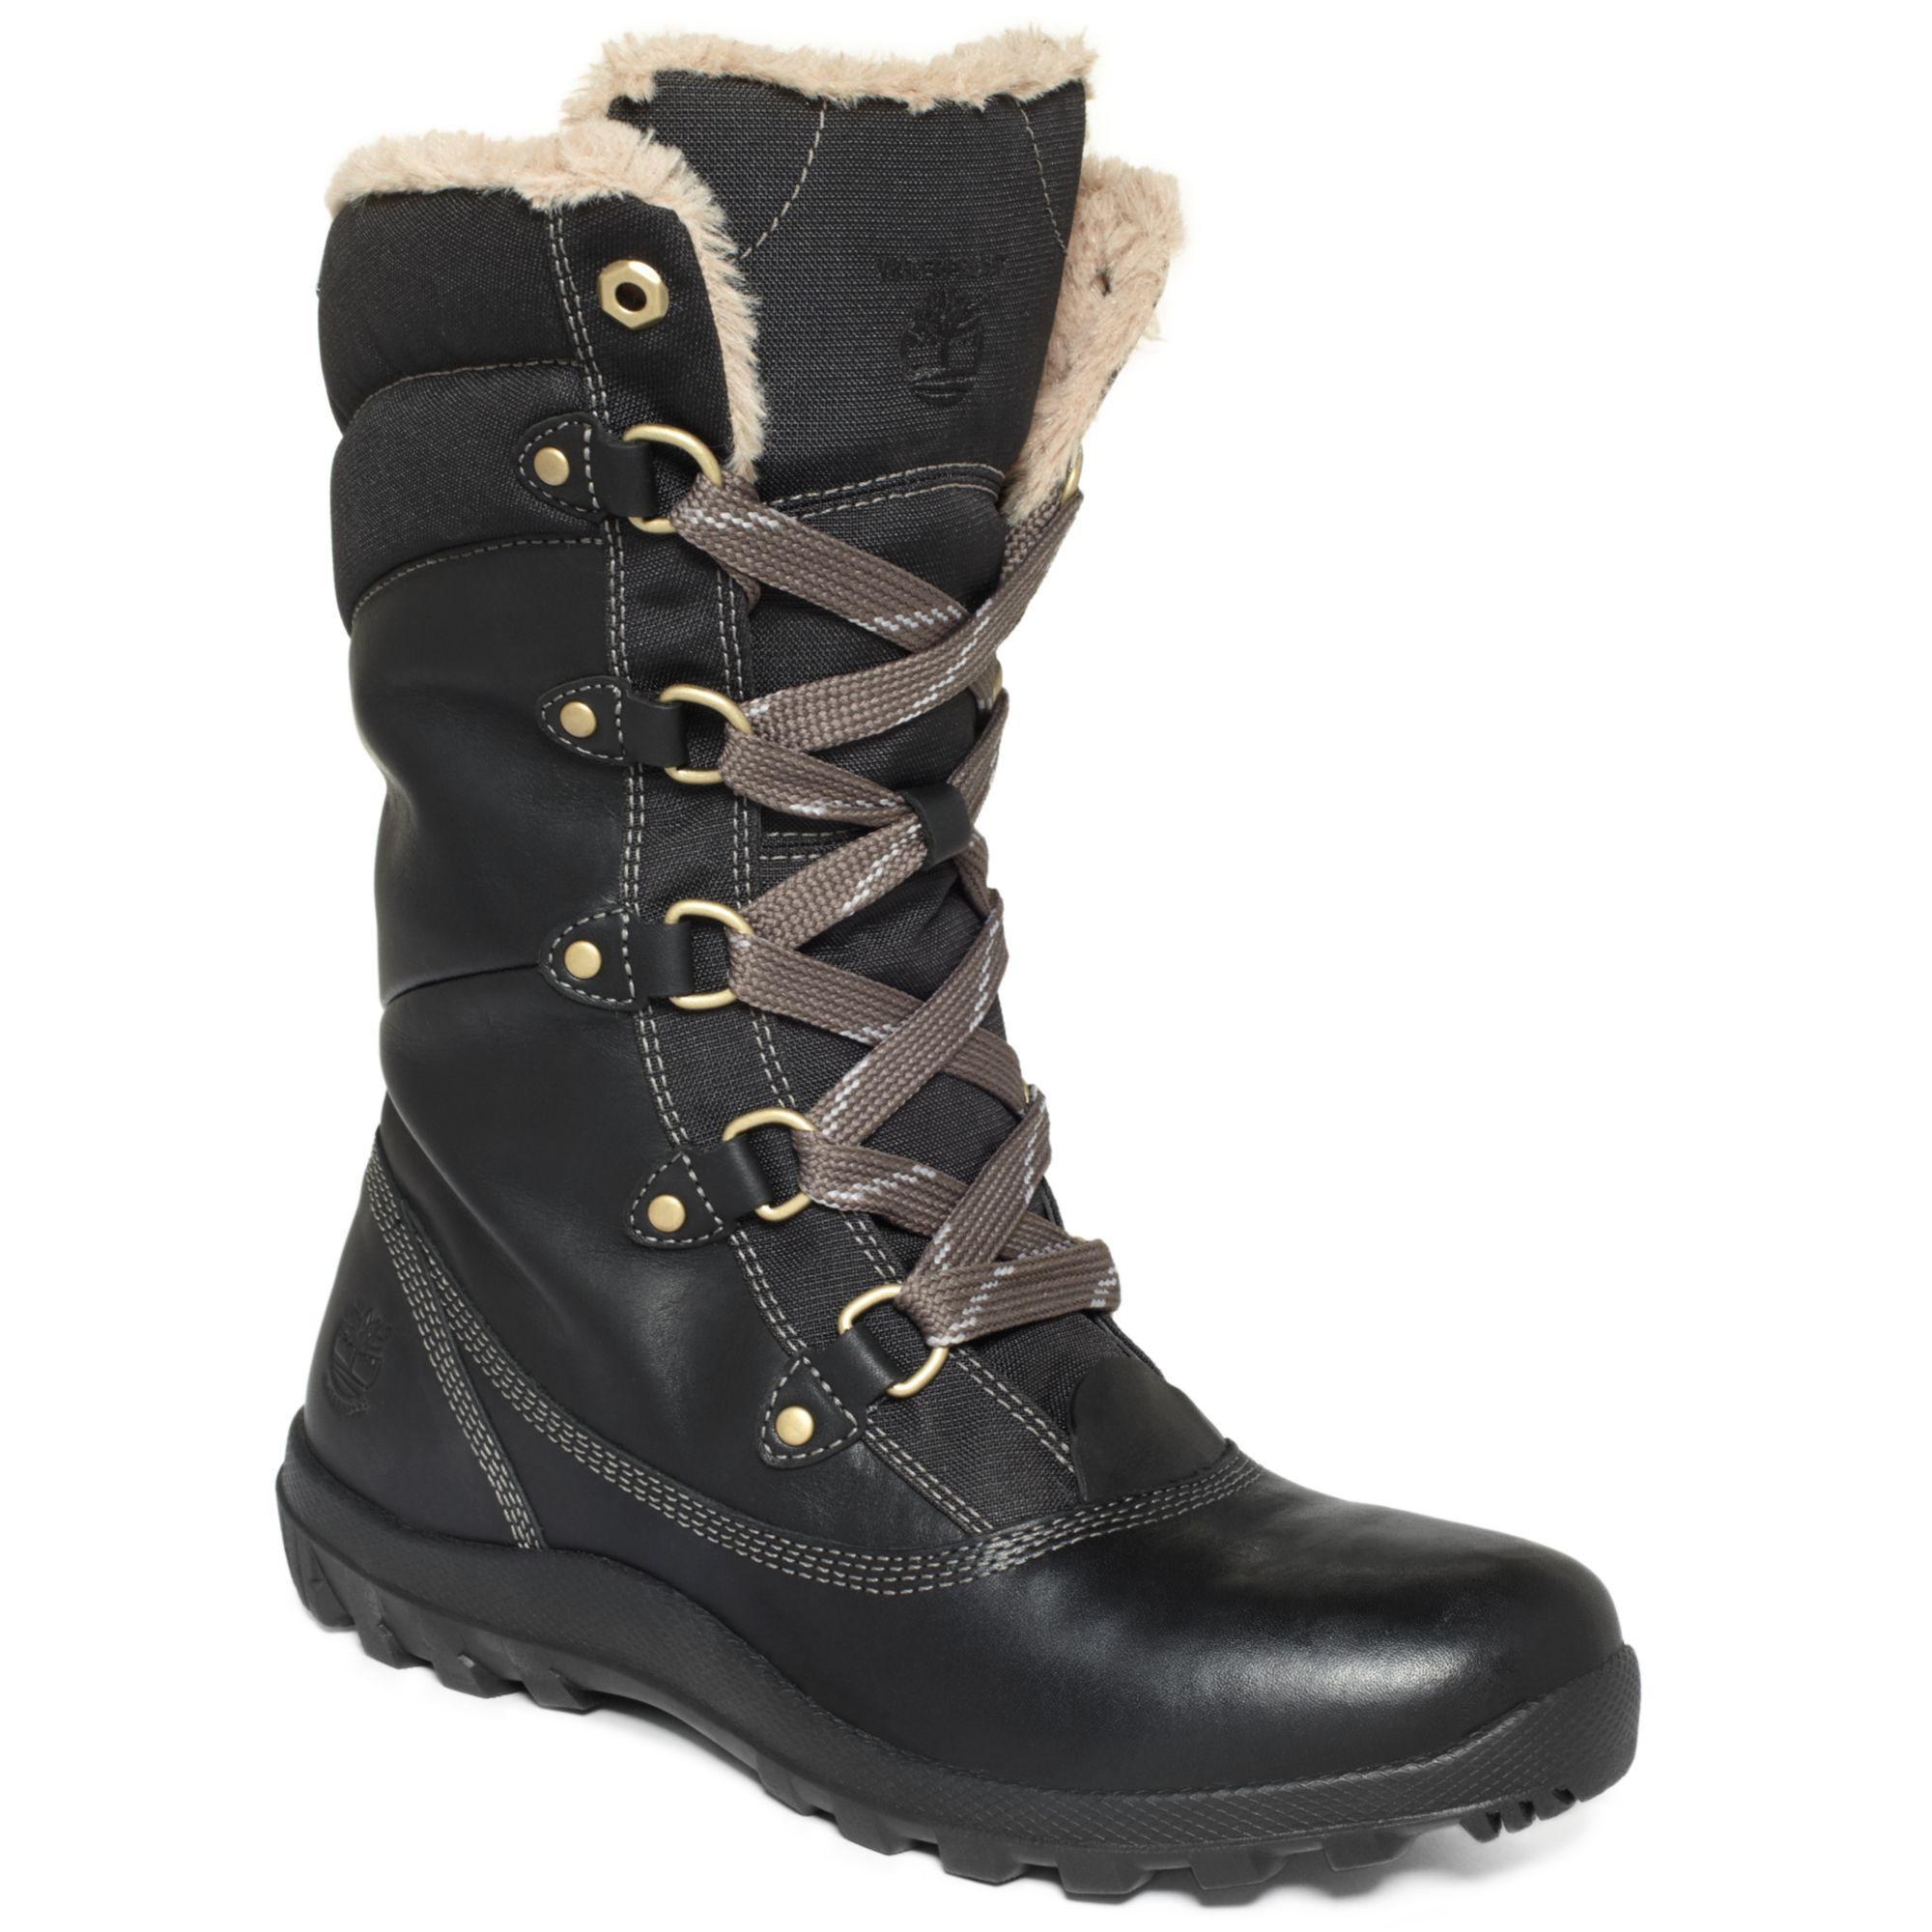 Timberland Women S Mount Hope Snow Boots In Black Lyst